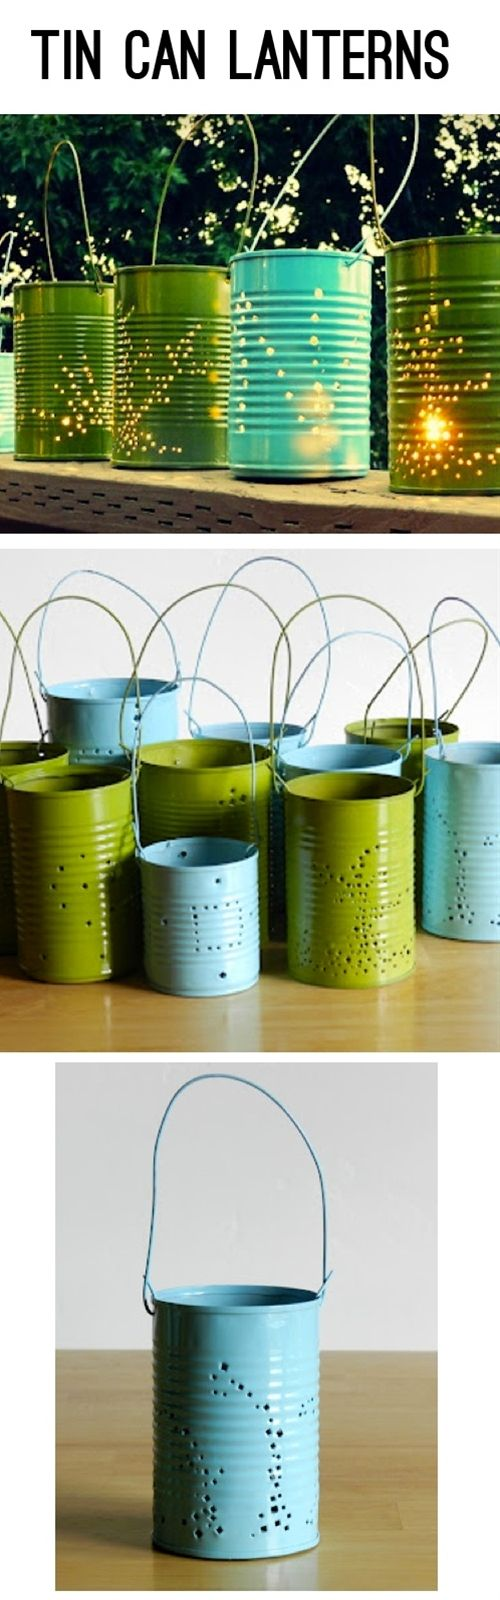 Awesome idea! Make your own pattern in a tin can, paint it a cool color...use as a lantern!